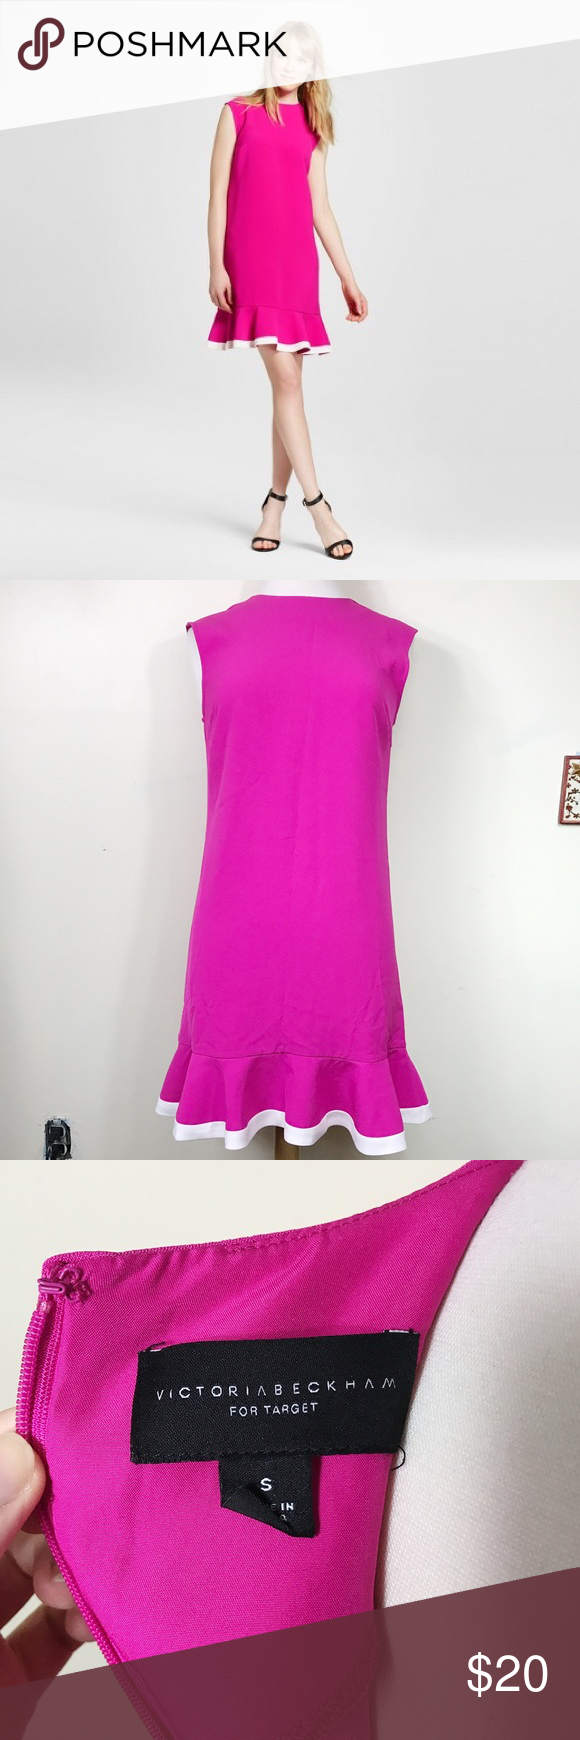 Victoria Beckham For Target Pink Ruffle Hem Dress Victoria Beckham For Target pink dress with ruffle detailing on the bottom. Size small. Very good condition. Victoria Beckham for Target Dresses Mini